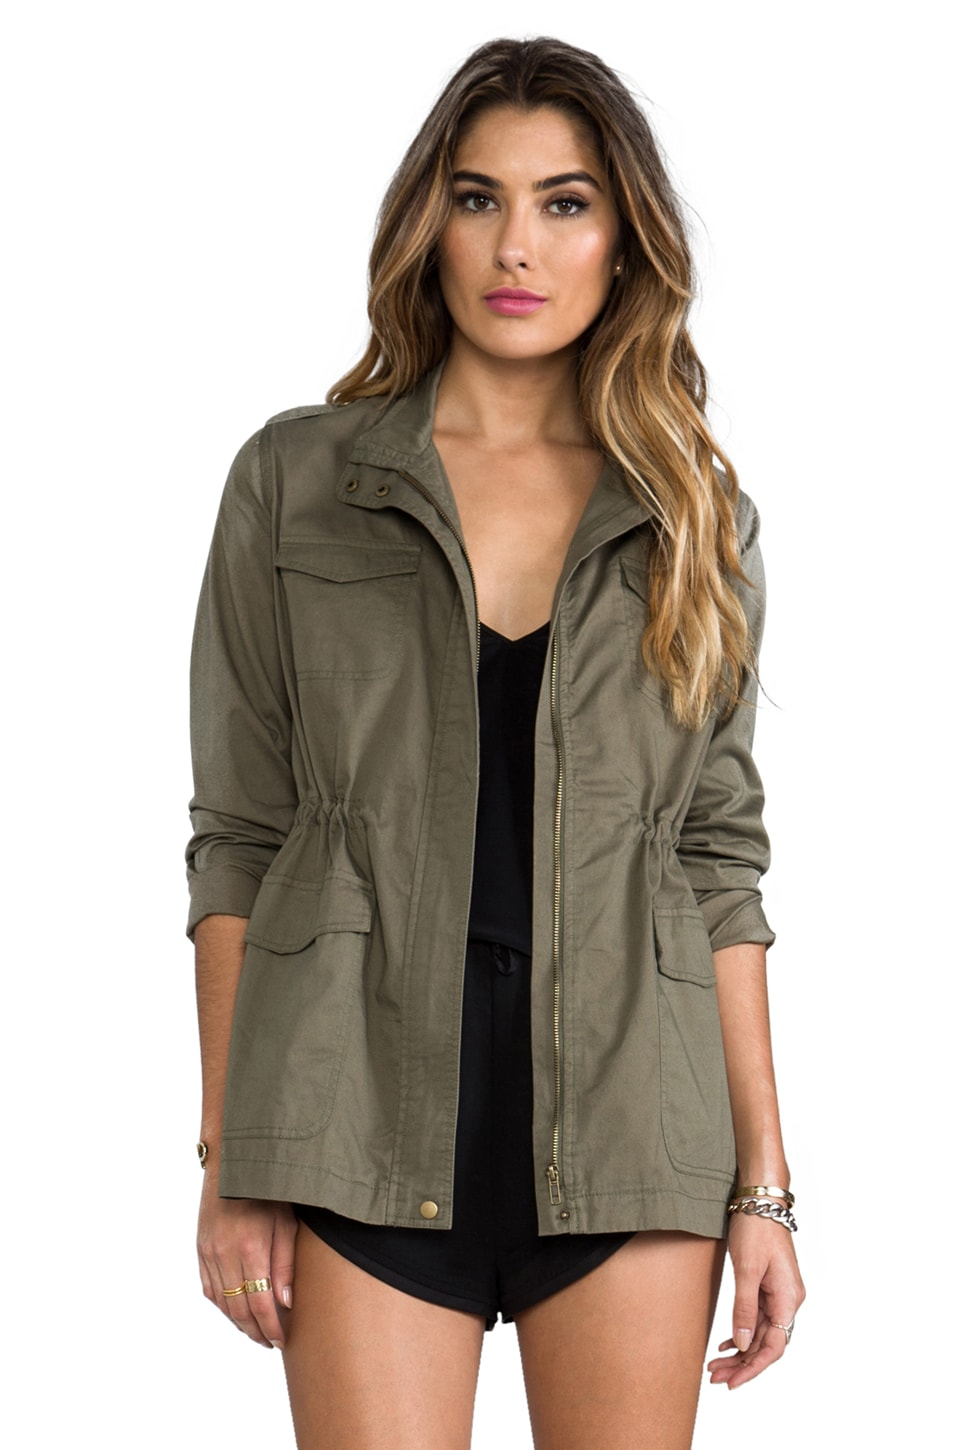 BB Dakota Caitlin Military Jacket in Spring Olive